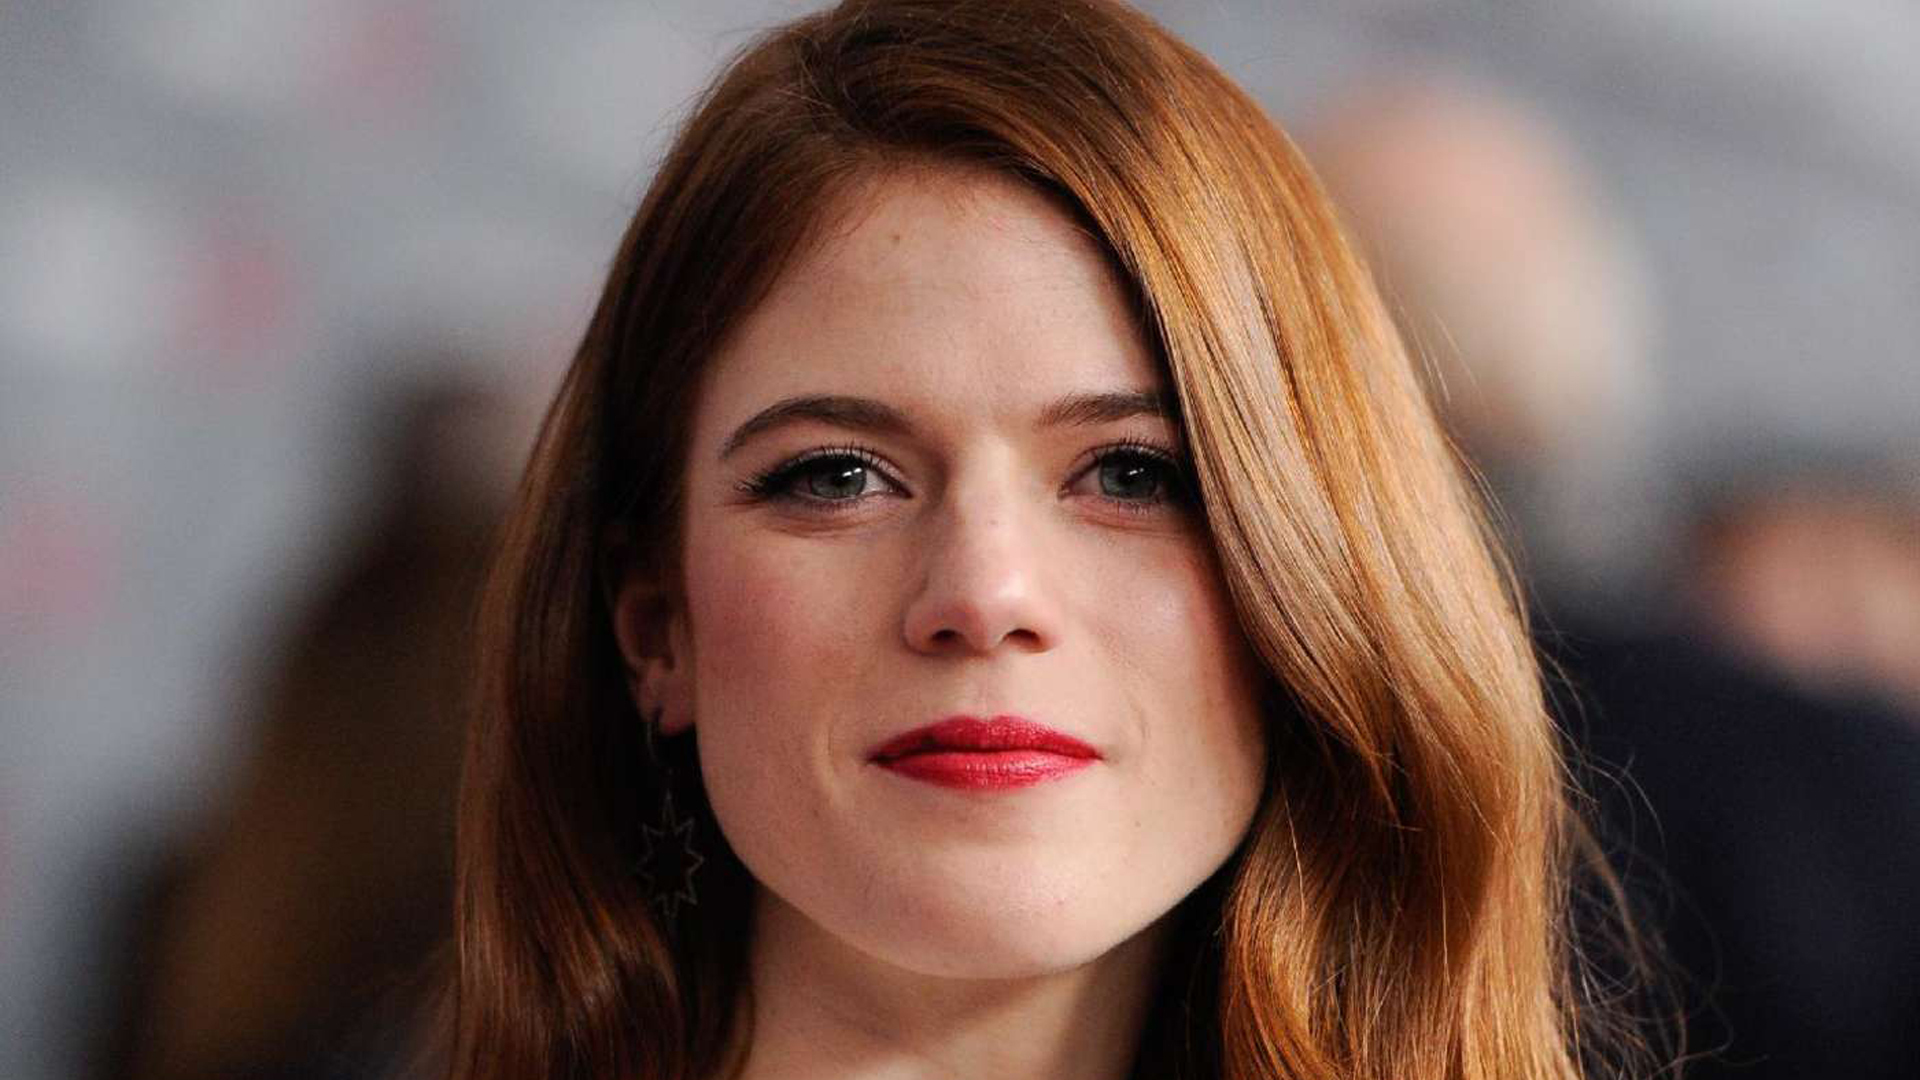 rose leslie wallpaper 5 - photo #22